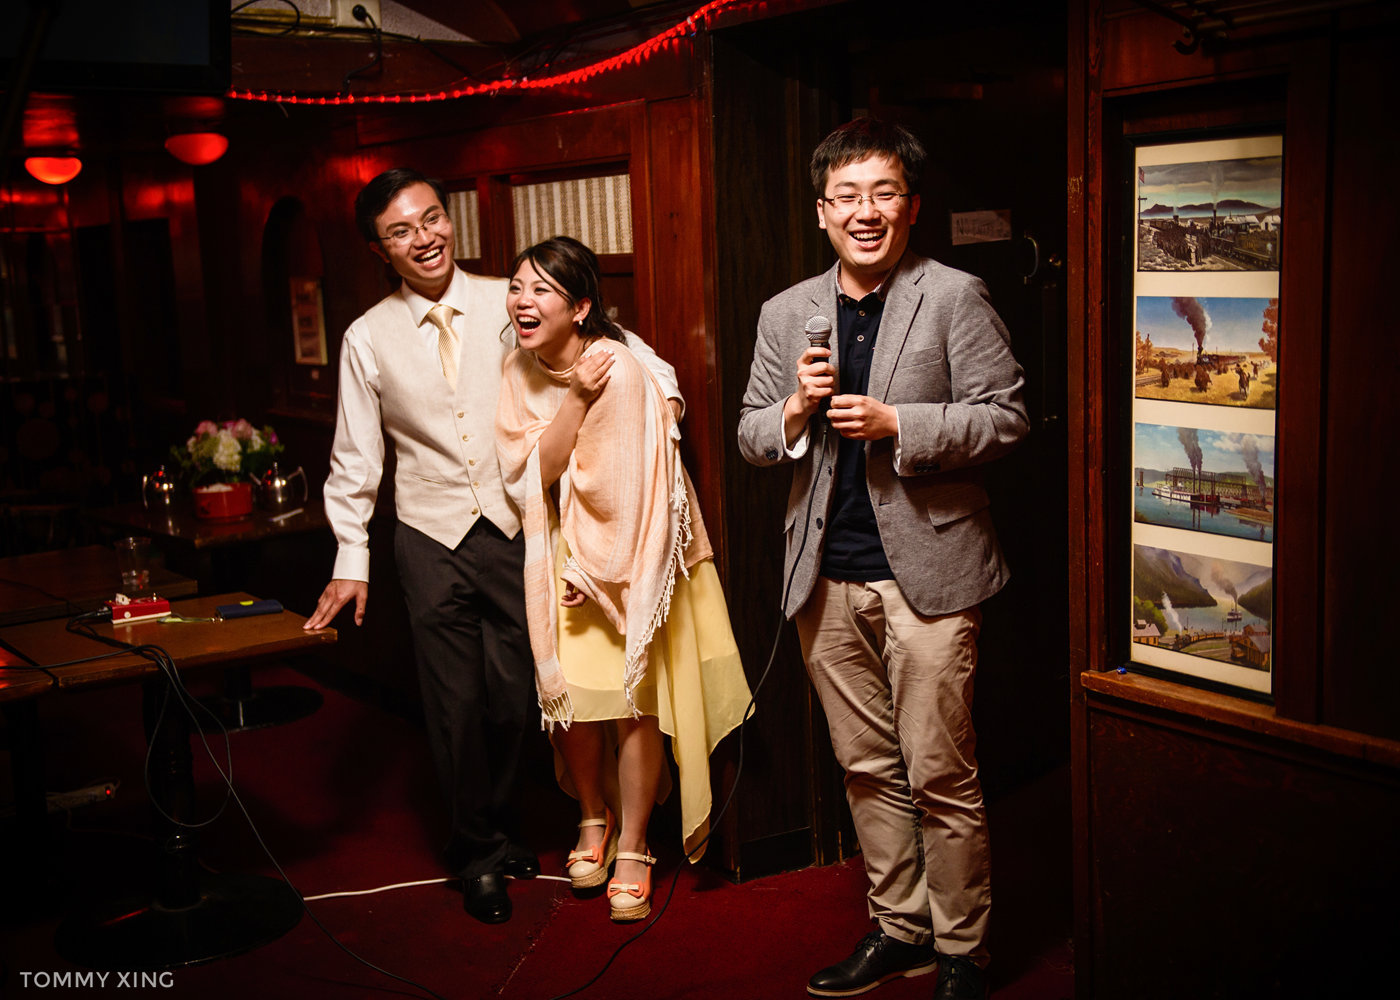 Seattle Wedding and pre wedding Los Angeles Tommy Xing Photography 西雅图洛杉矶旧金山婚礼婚纱照摄影师 236.jpg